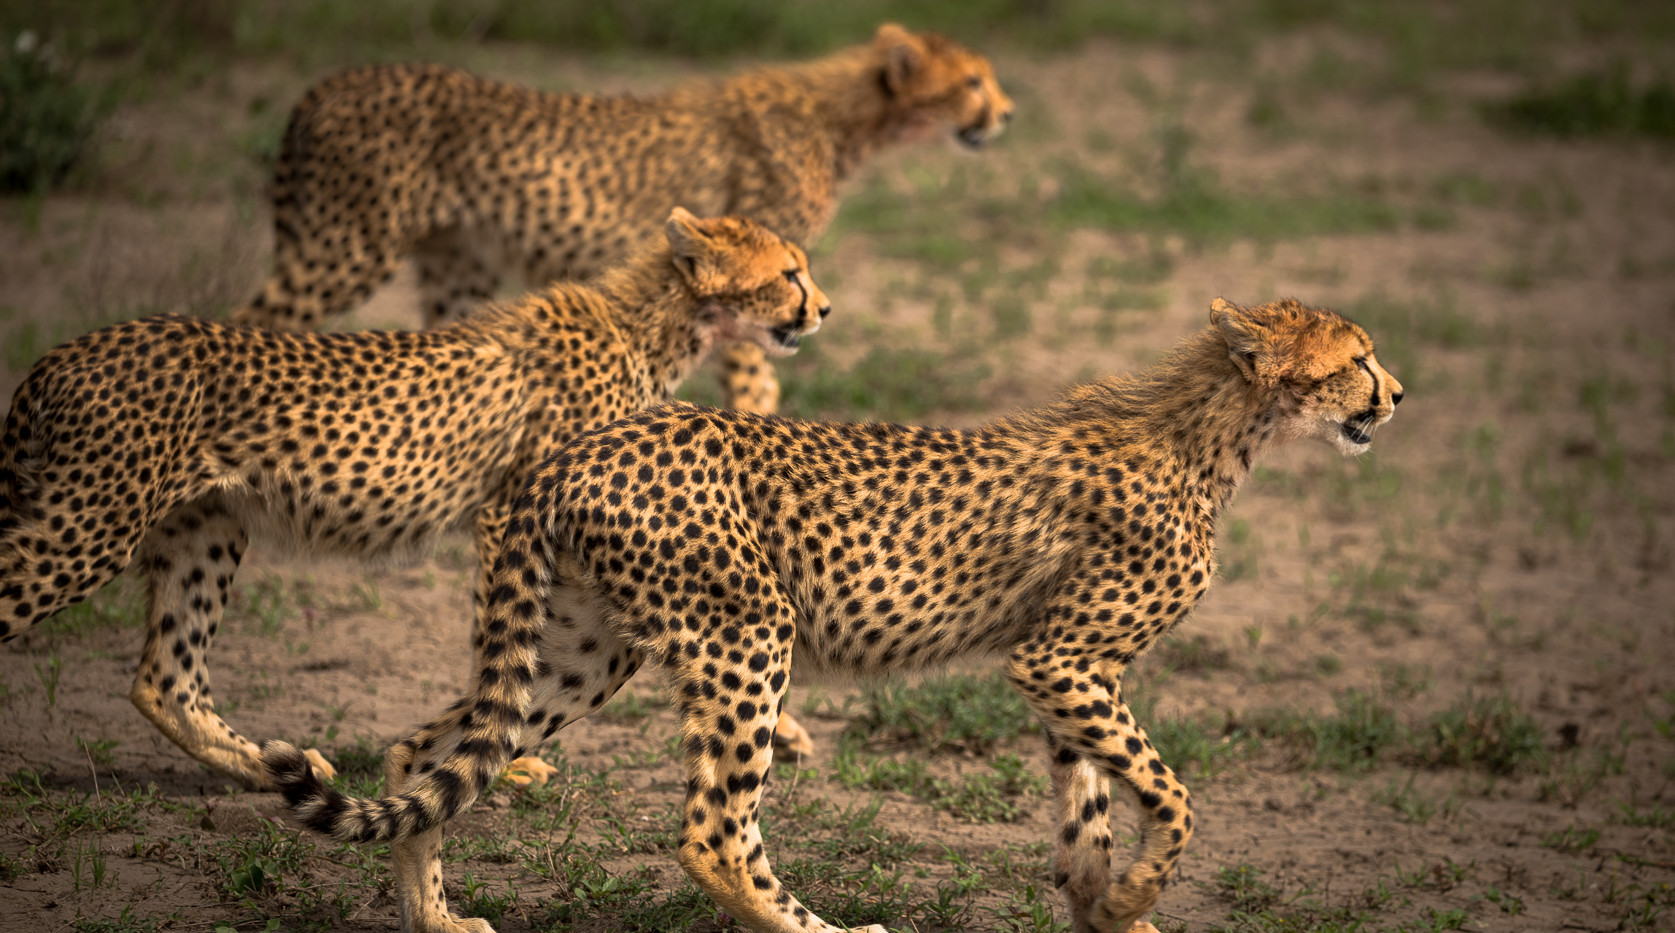 Cheetah trio on the move